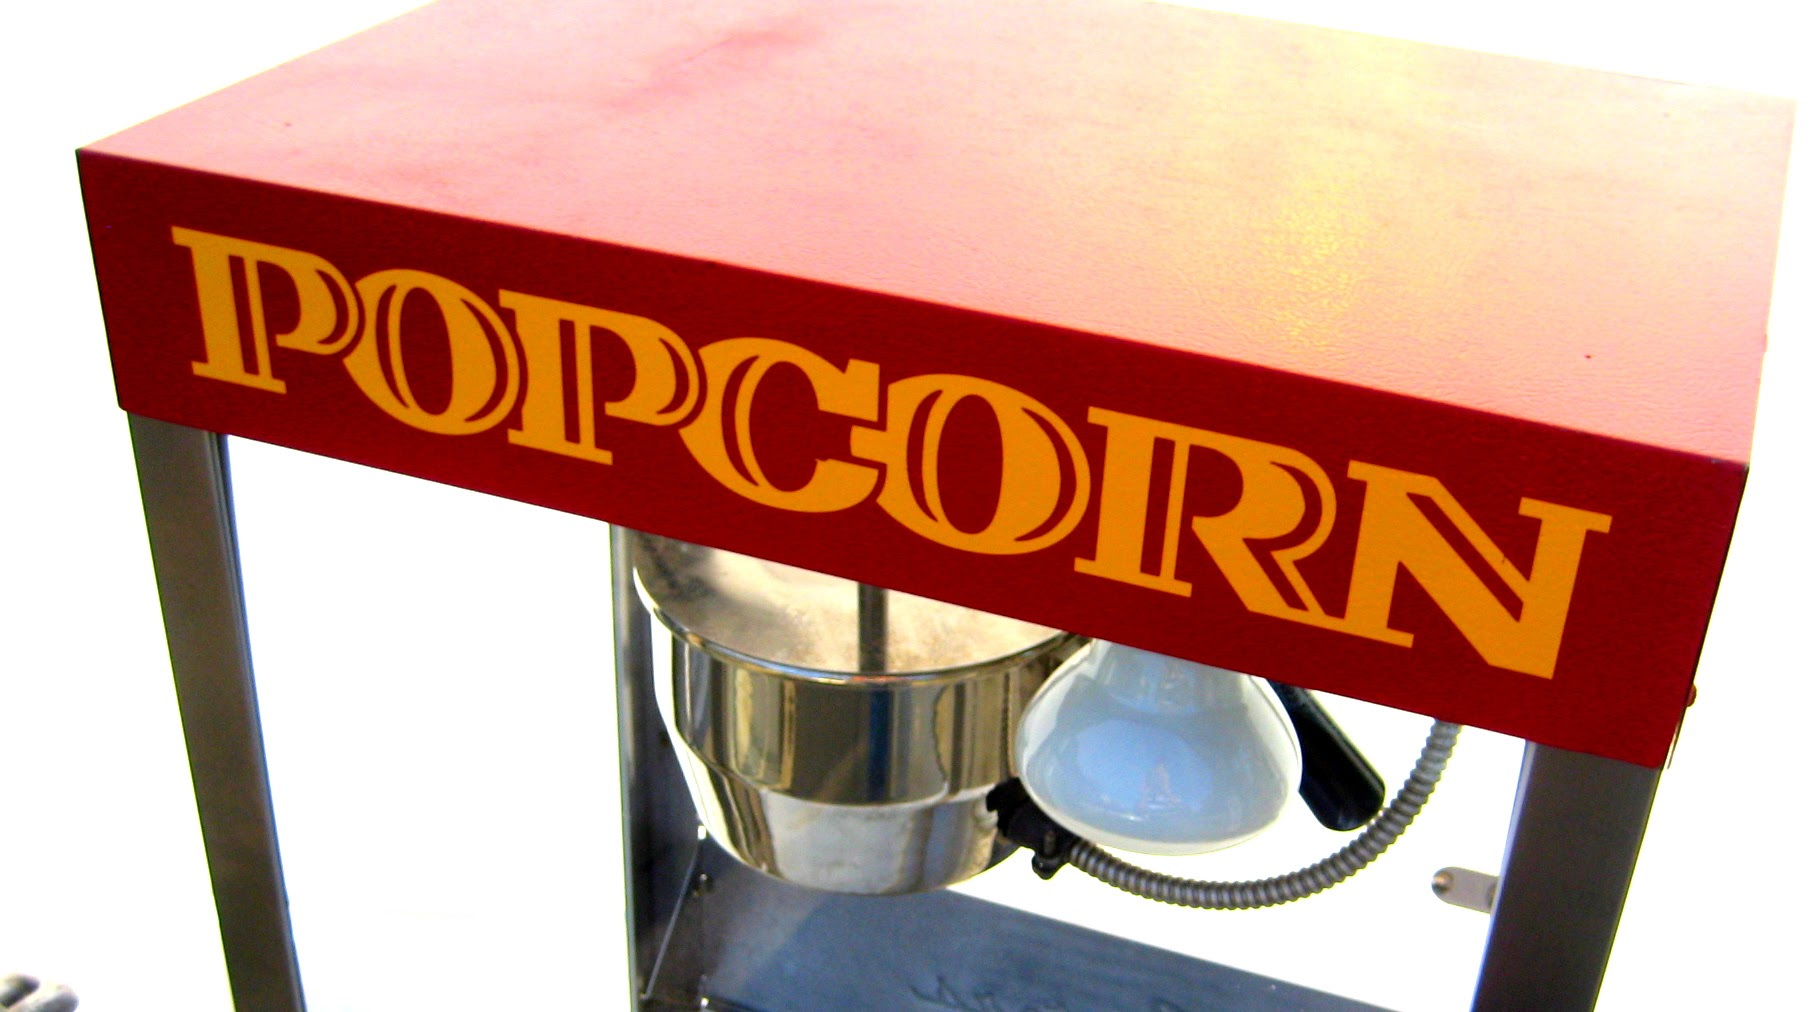 Cretors brand popcorn machine